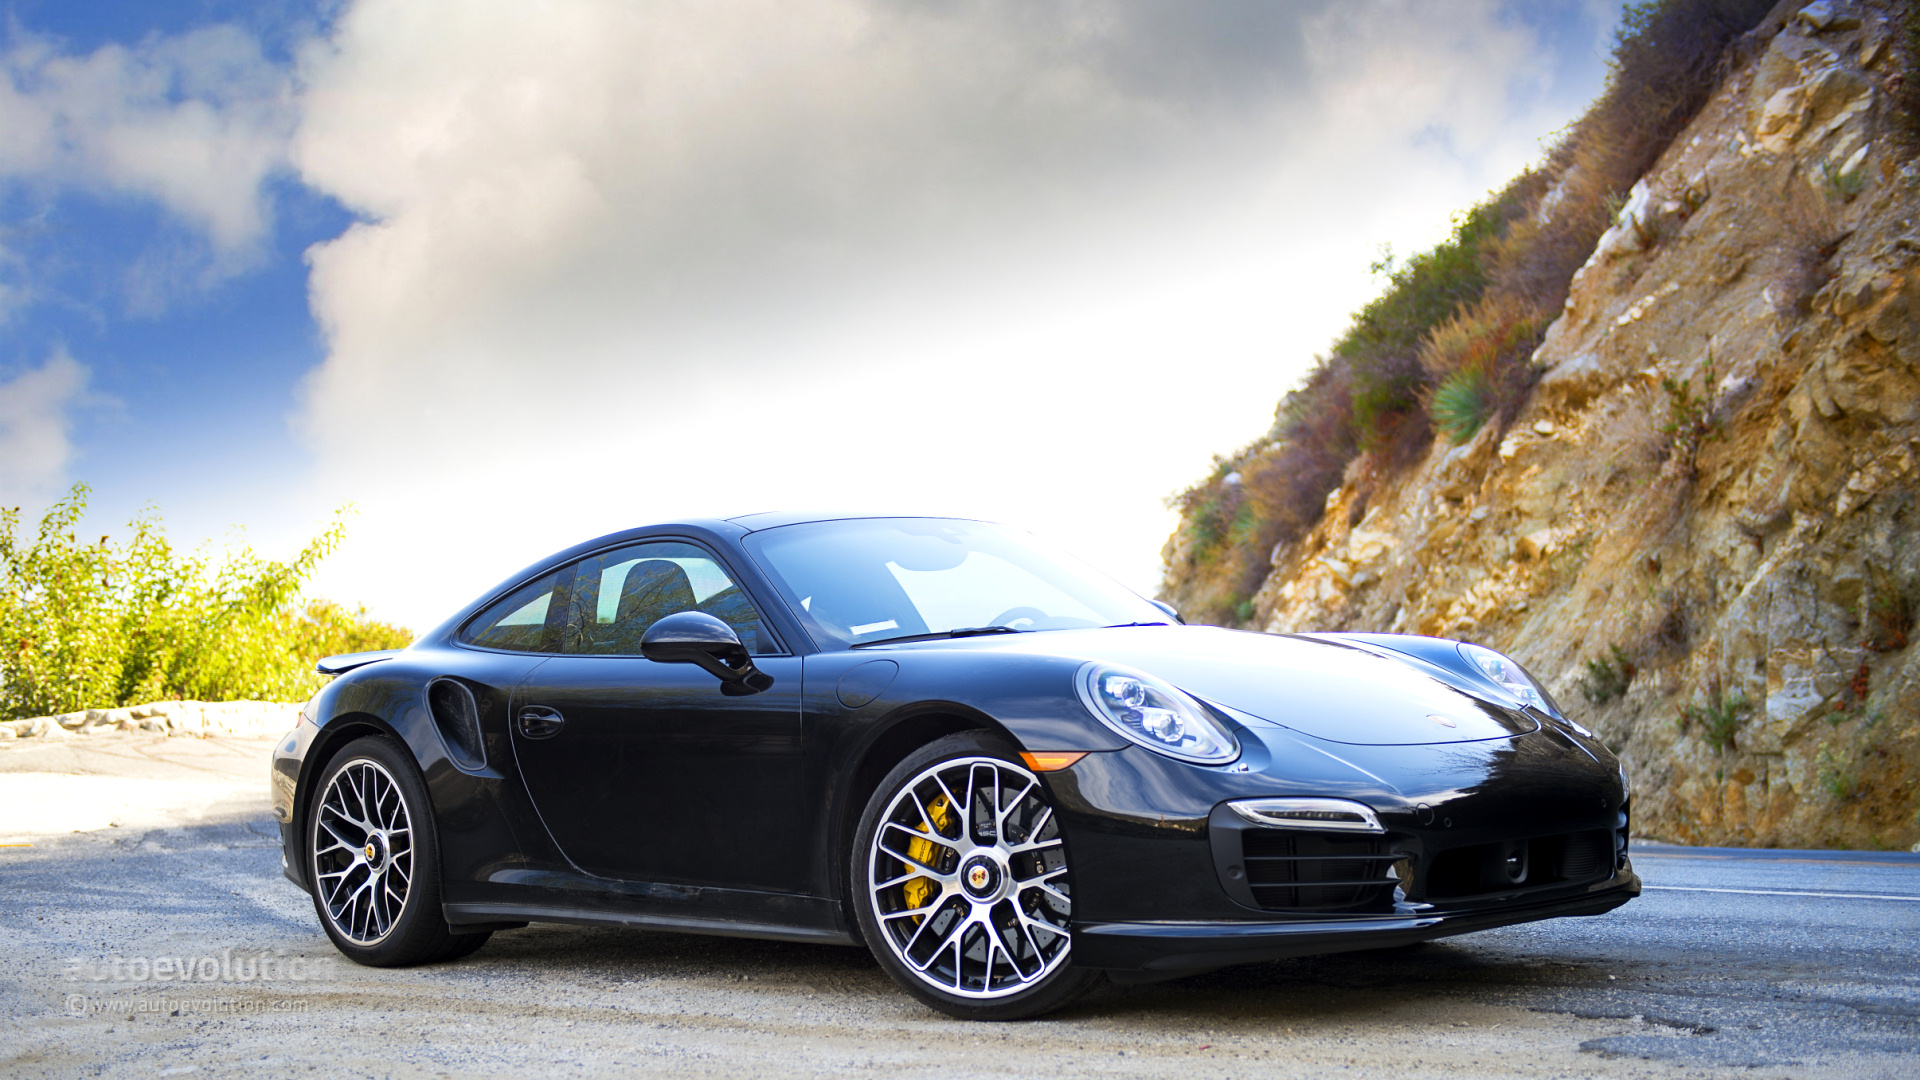 2014 Porsche 911 Turbo S Original Pictures Autoevolution